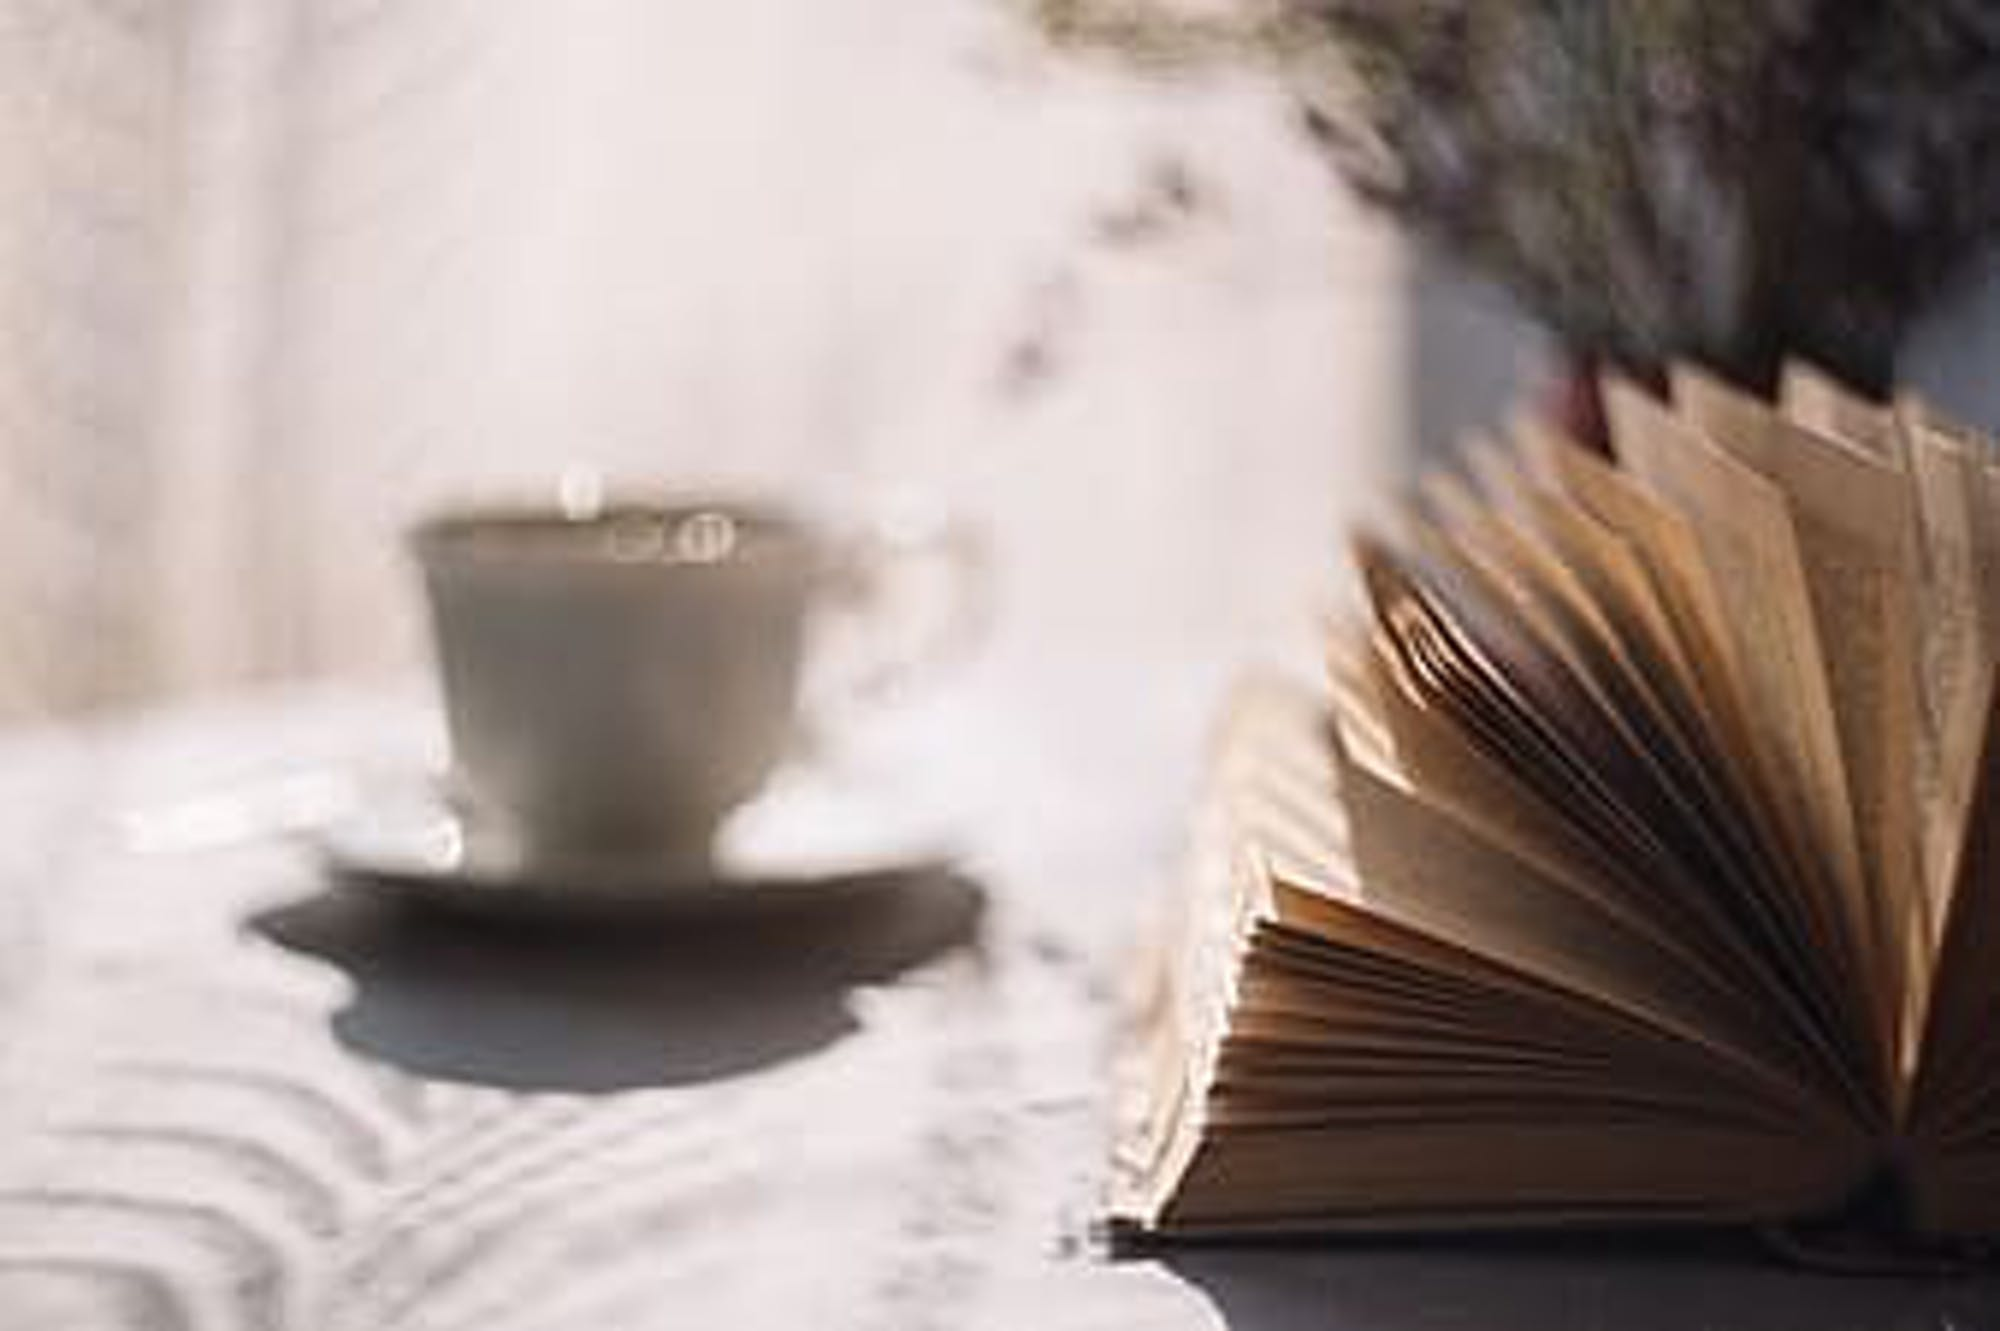 brown-book-open-near-white-ceramic-cup-during-daytime-thumbnail